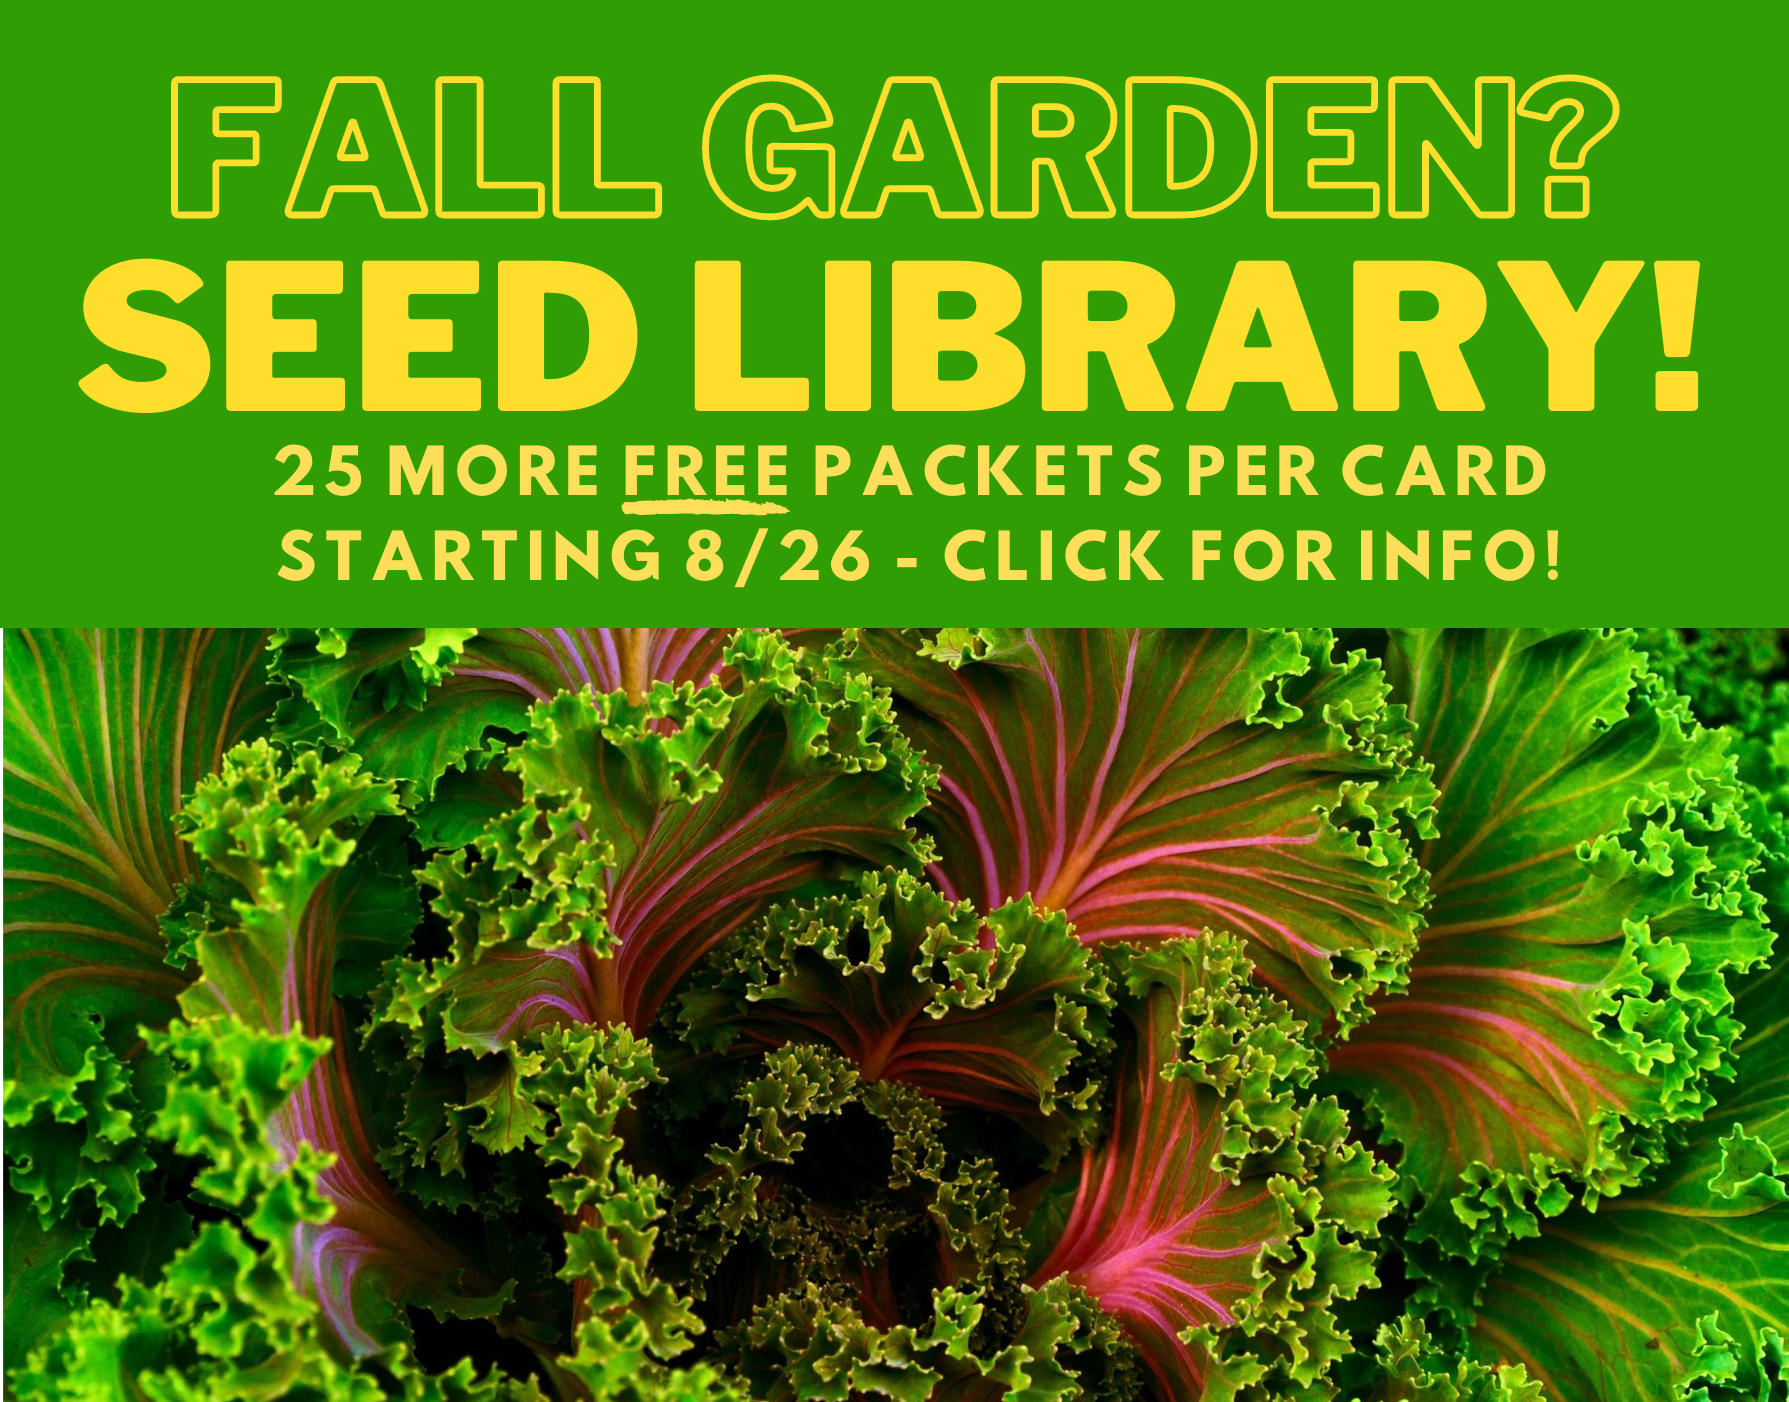 Fall Garden Seed Library